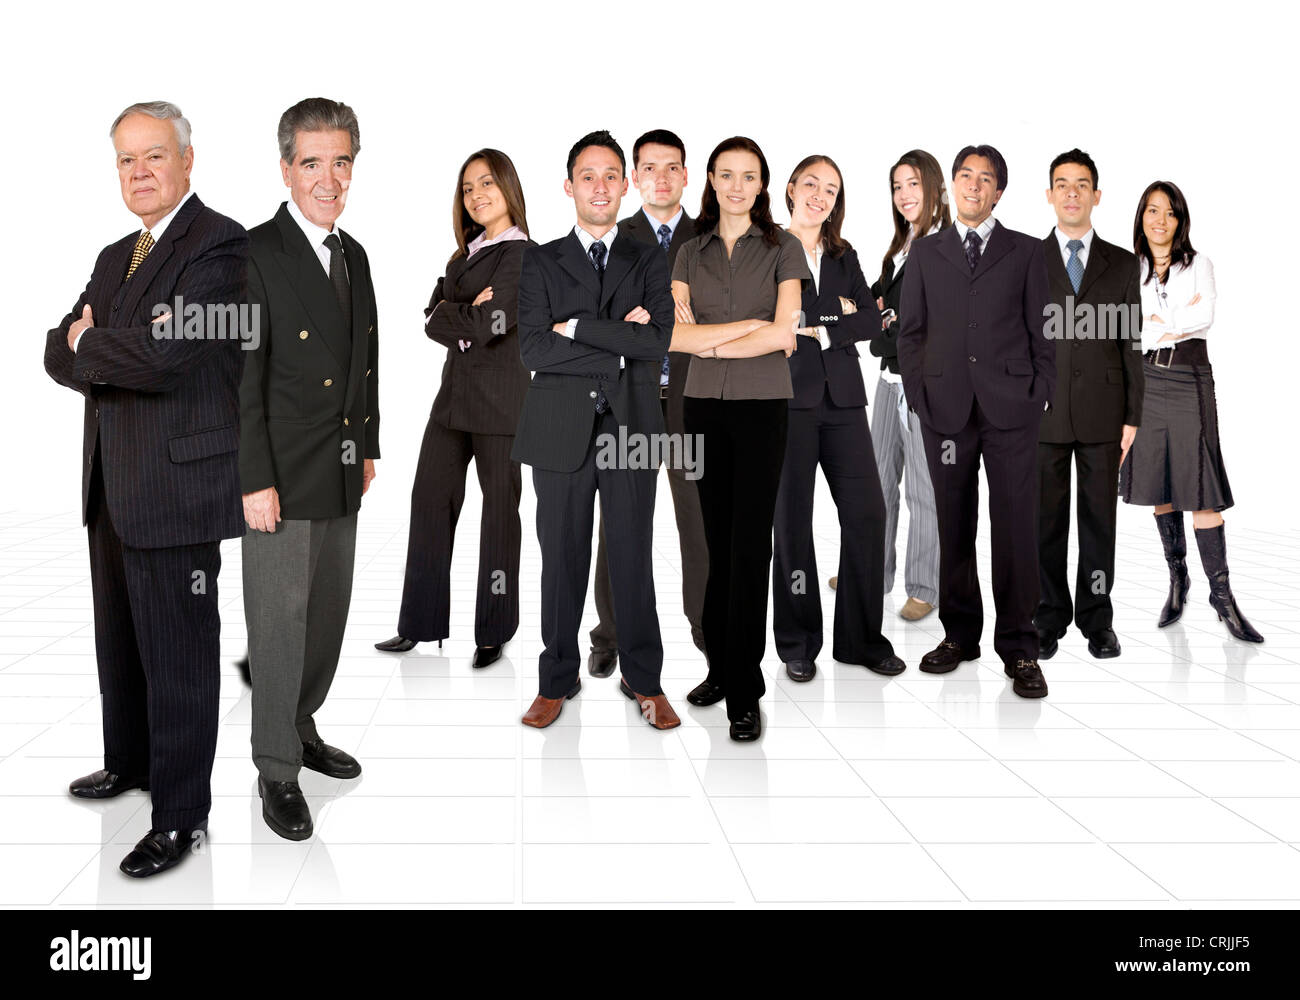 two company directors standing separately in front of their staff - Stock Image